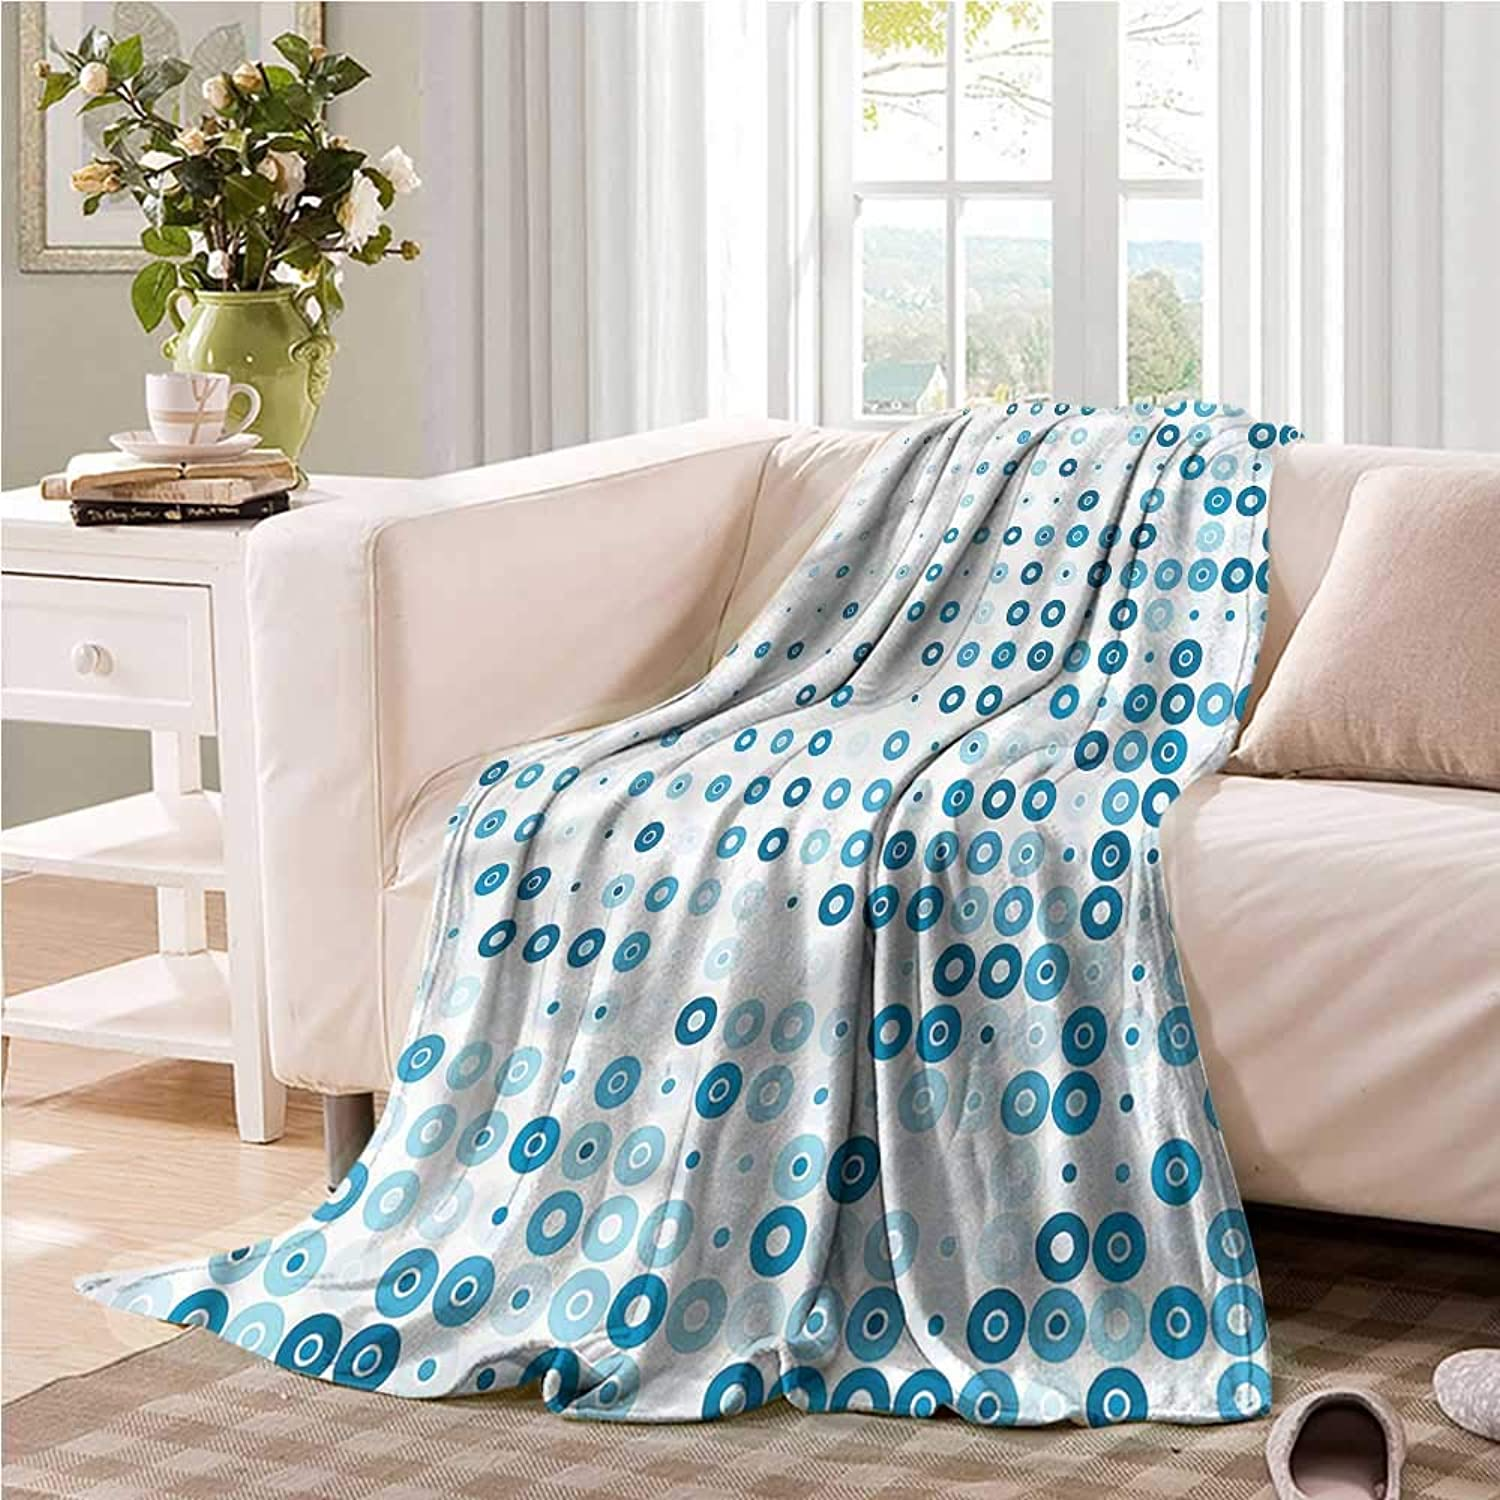 Oncegod Baby Blanket Pale bluee Retro Circles and Dots Camping Throw,Office wrap 60  W x 51  L